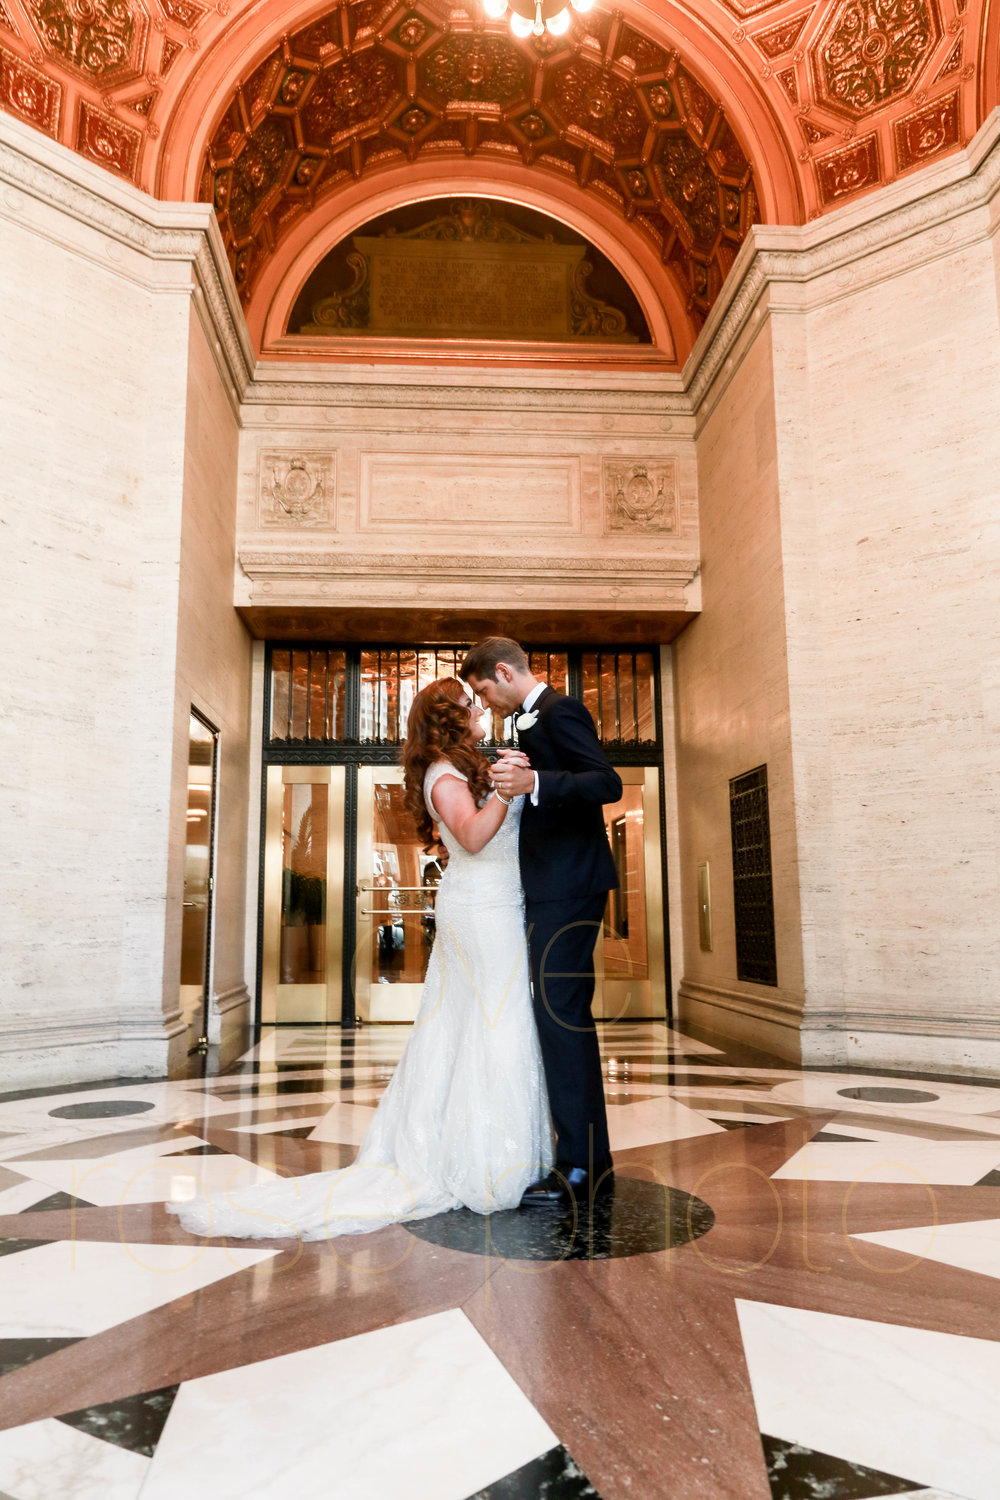 London House Chicago Wedding Photographer best of wedding day photography-14.jpg